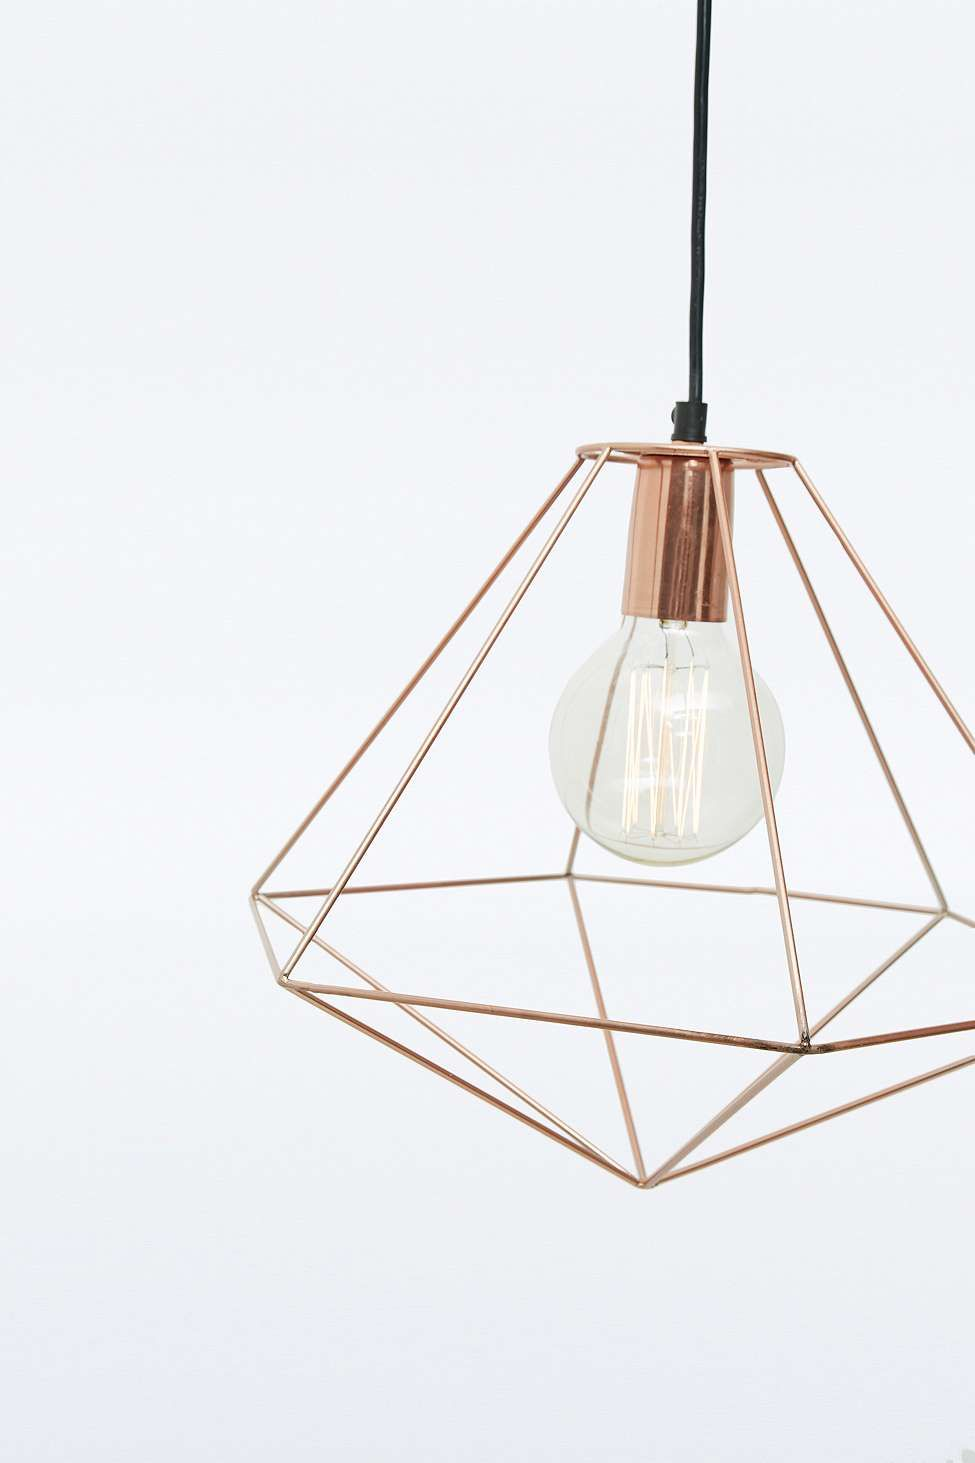 Geometric Pendant Lampes LightLuminaires Deco Copper Rq34jL5Ac